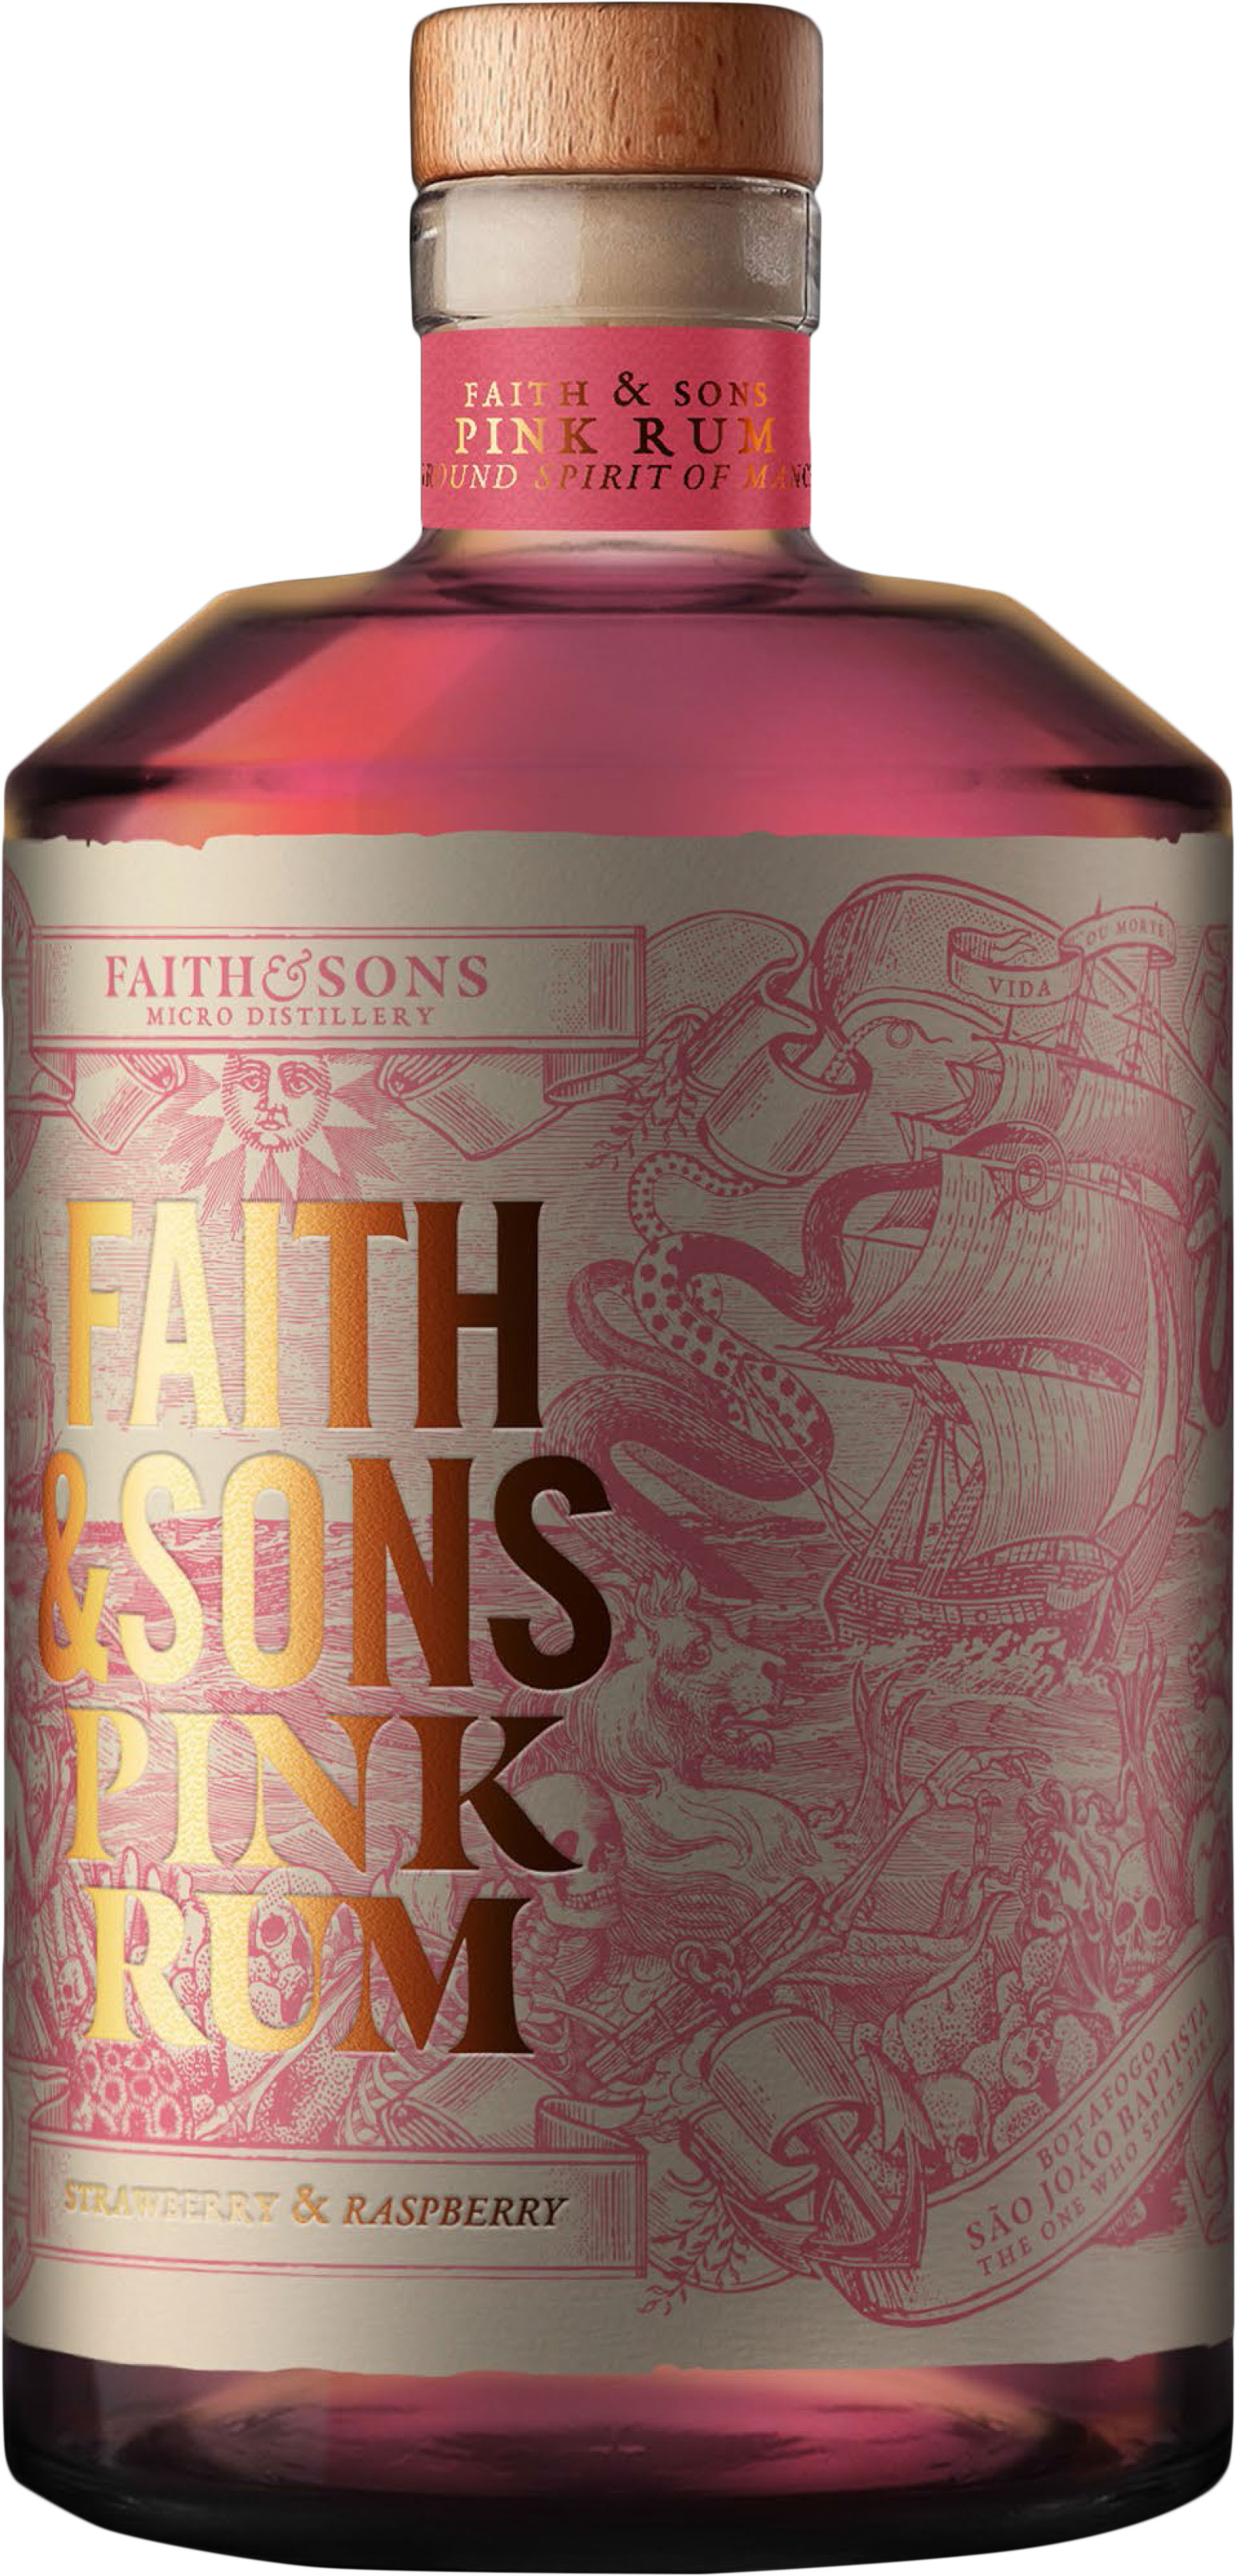 Faith & Sons - Pink Rum 50cl Bottle